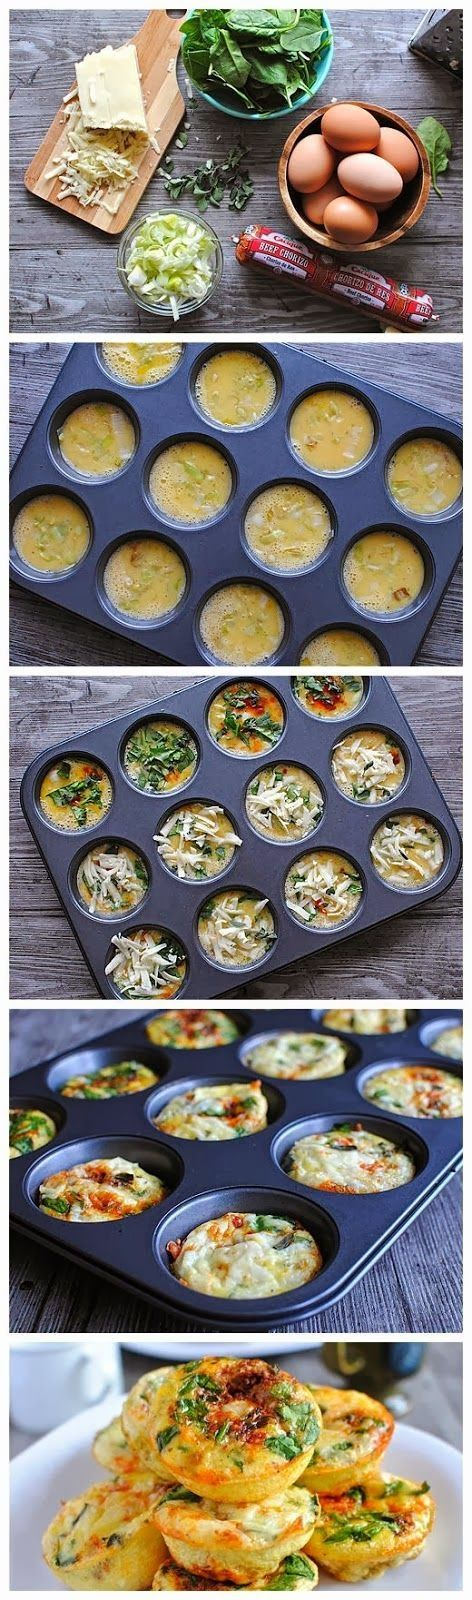 Yummy Recipes: Mini Frittata Brunch Bar recipe